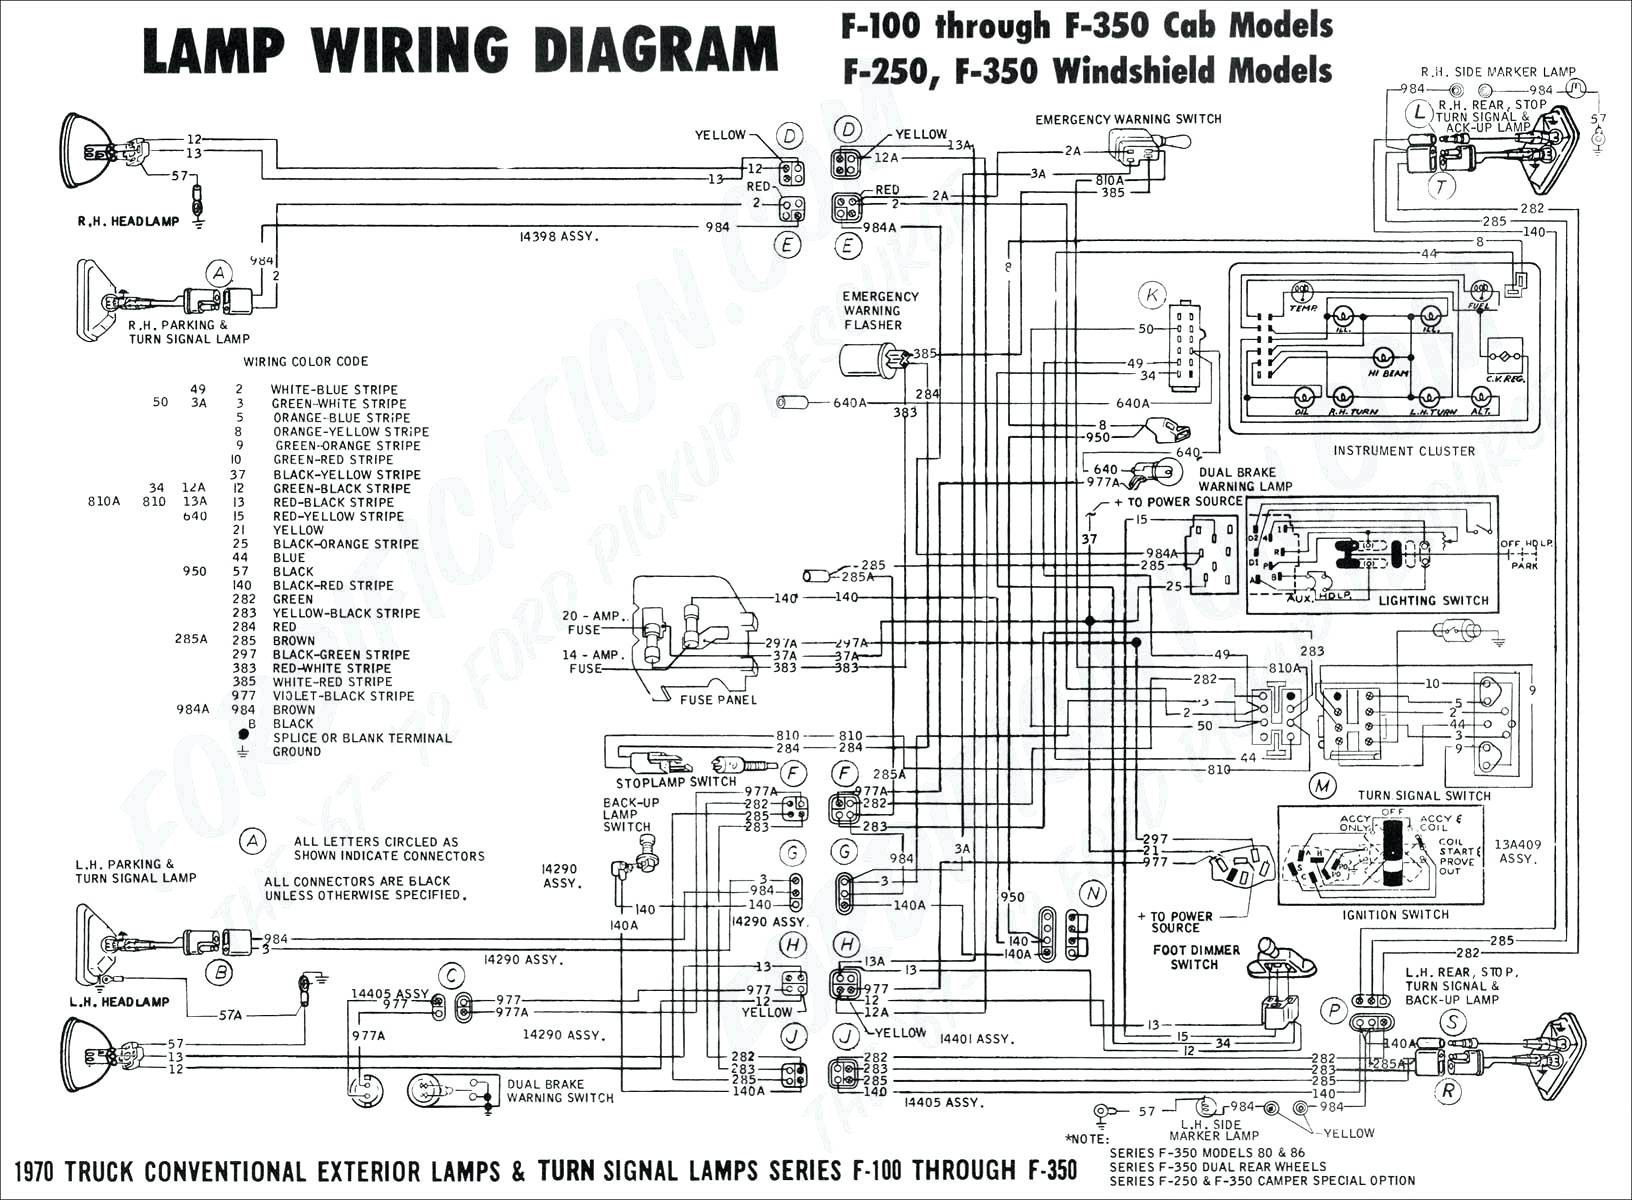 Gallery Of Wiring Diagram For Utility Trailer With